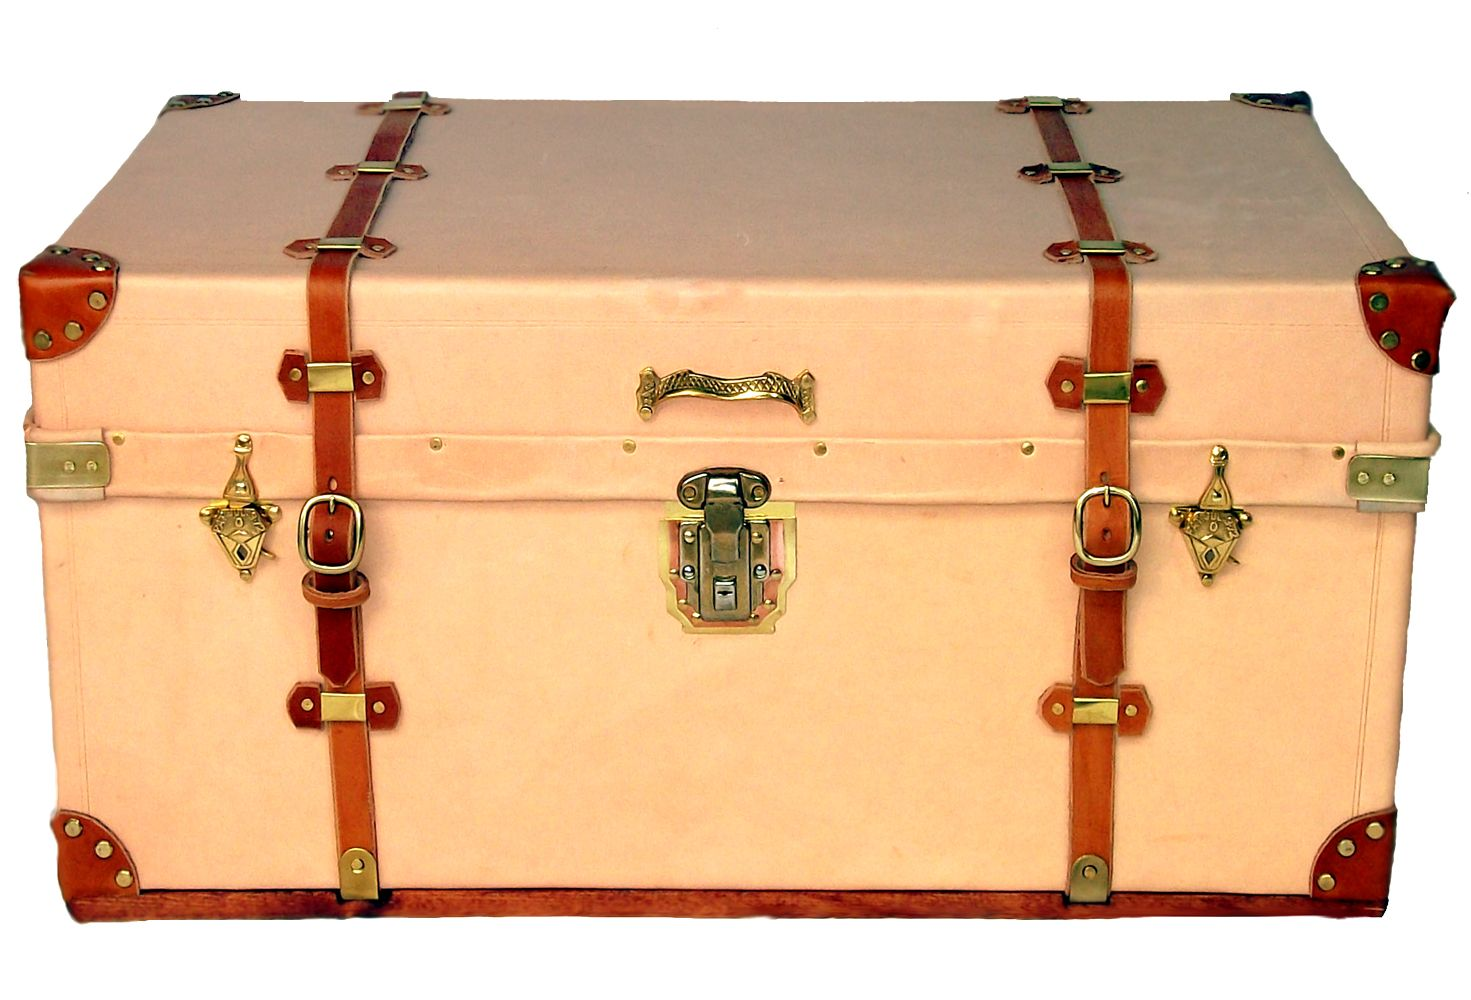 17 Best images about Luggage on Pinterest